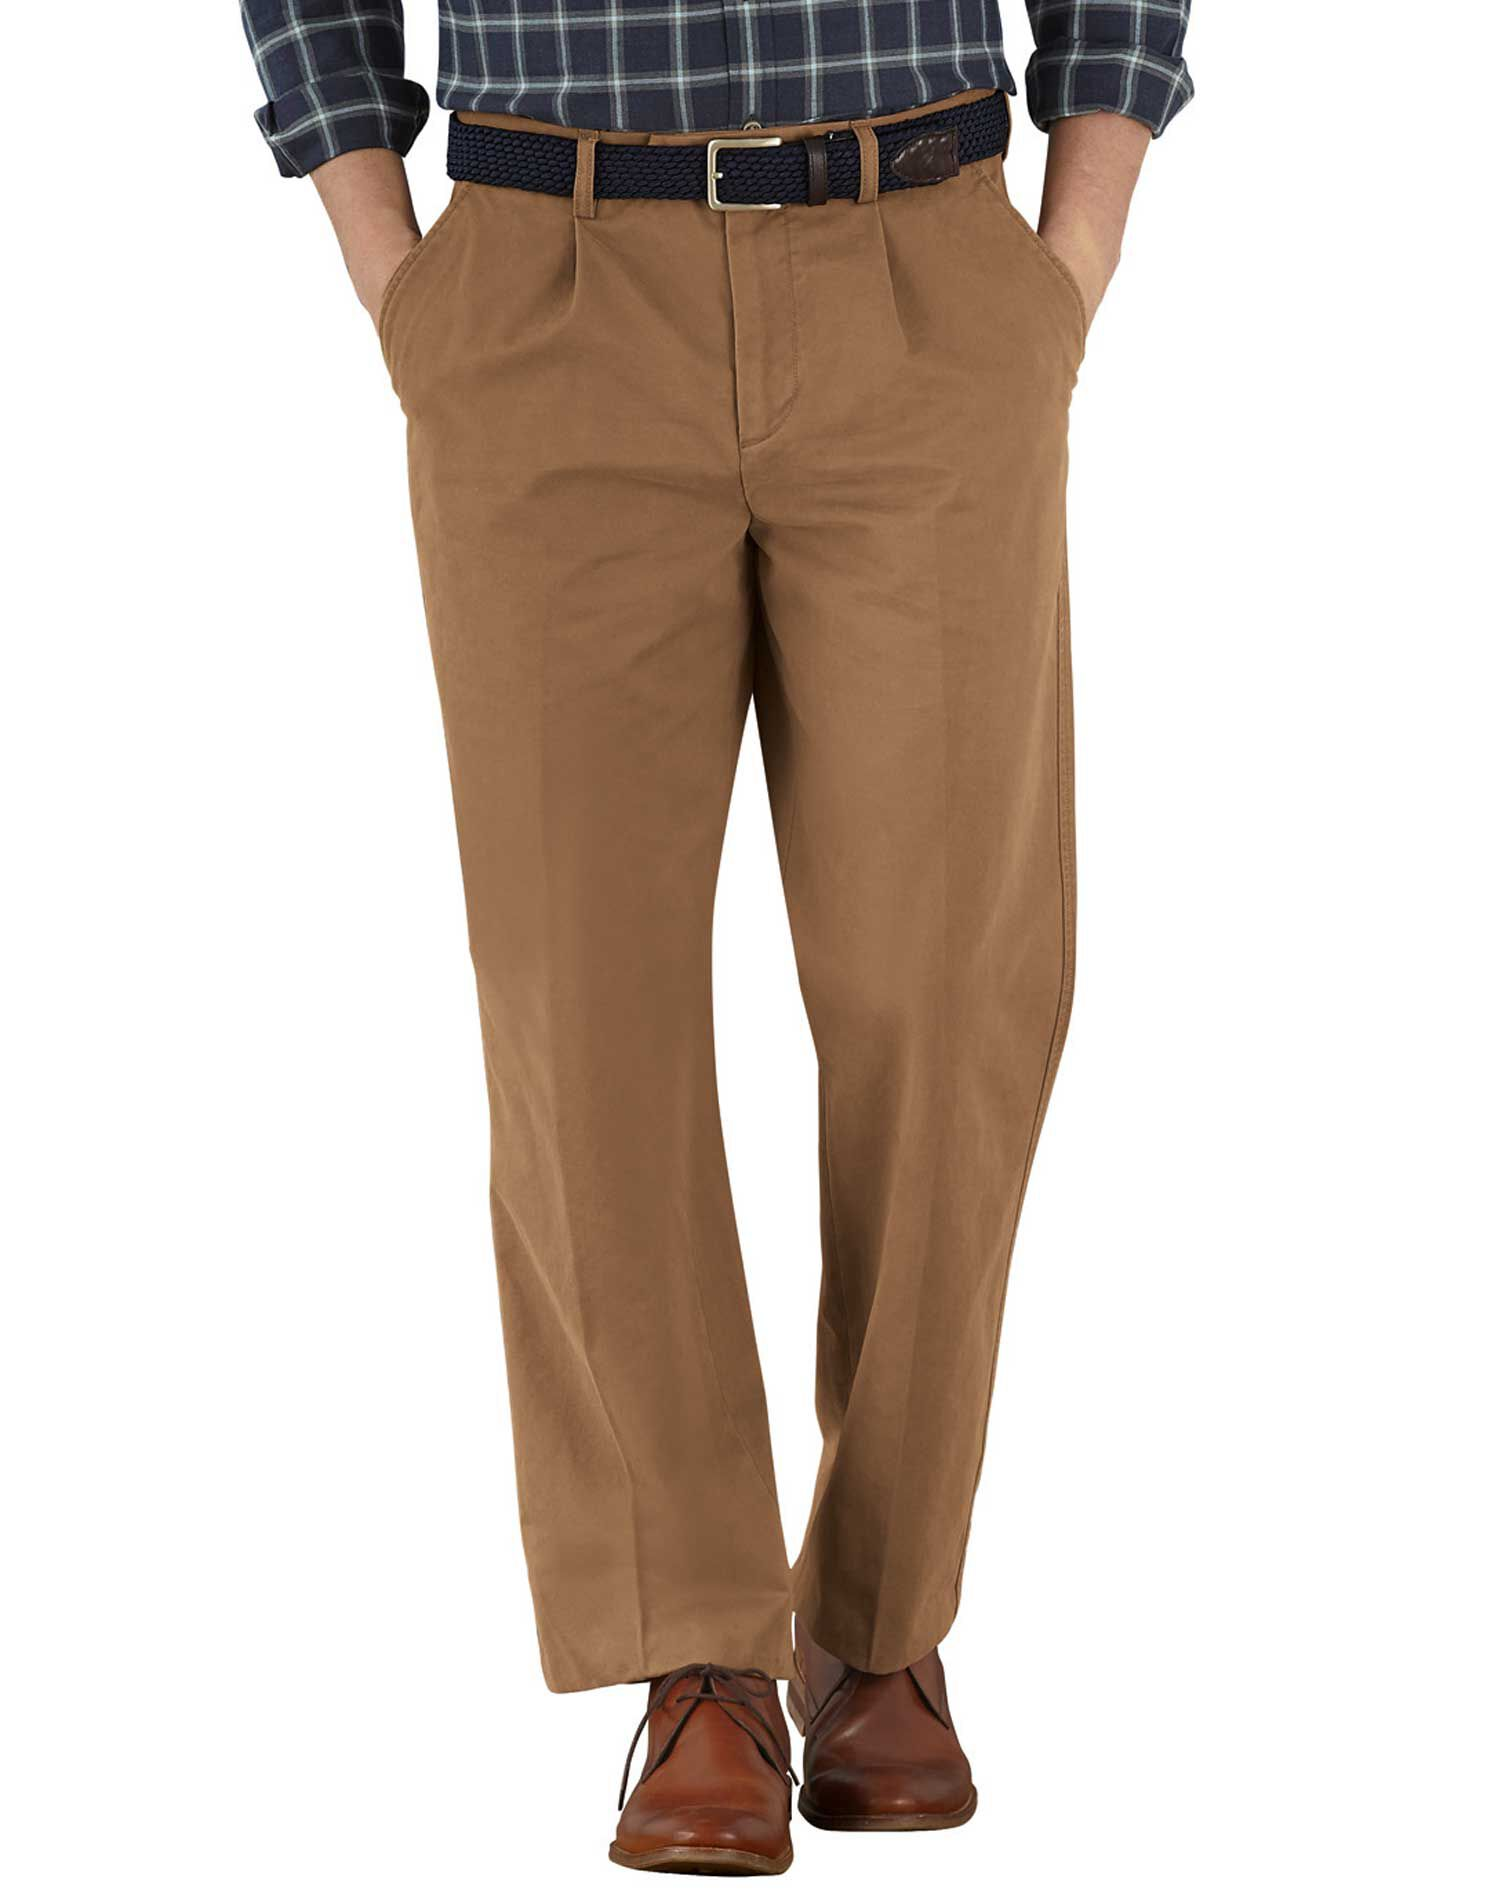 Camel Classic Fit Single Pleat Cotton Chino Trousers Size W32 L34 by Charles Tyrwhitt